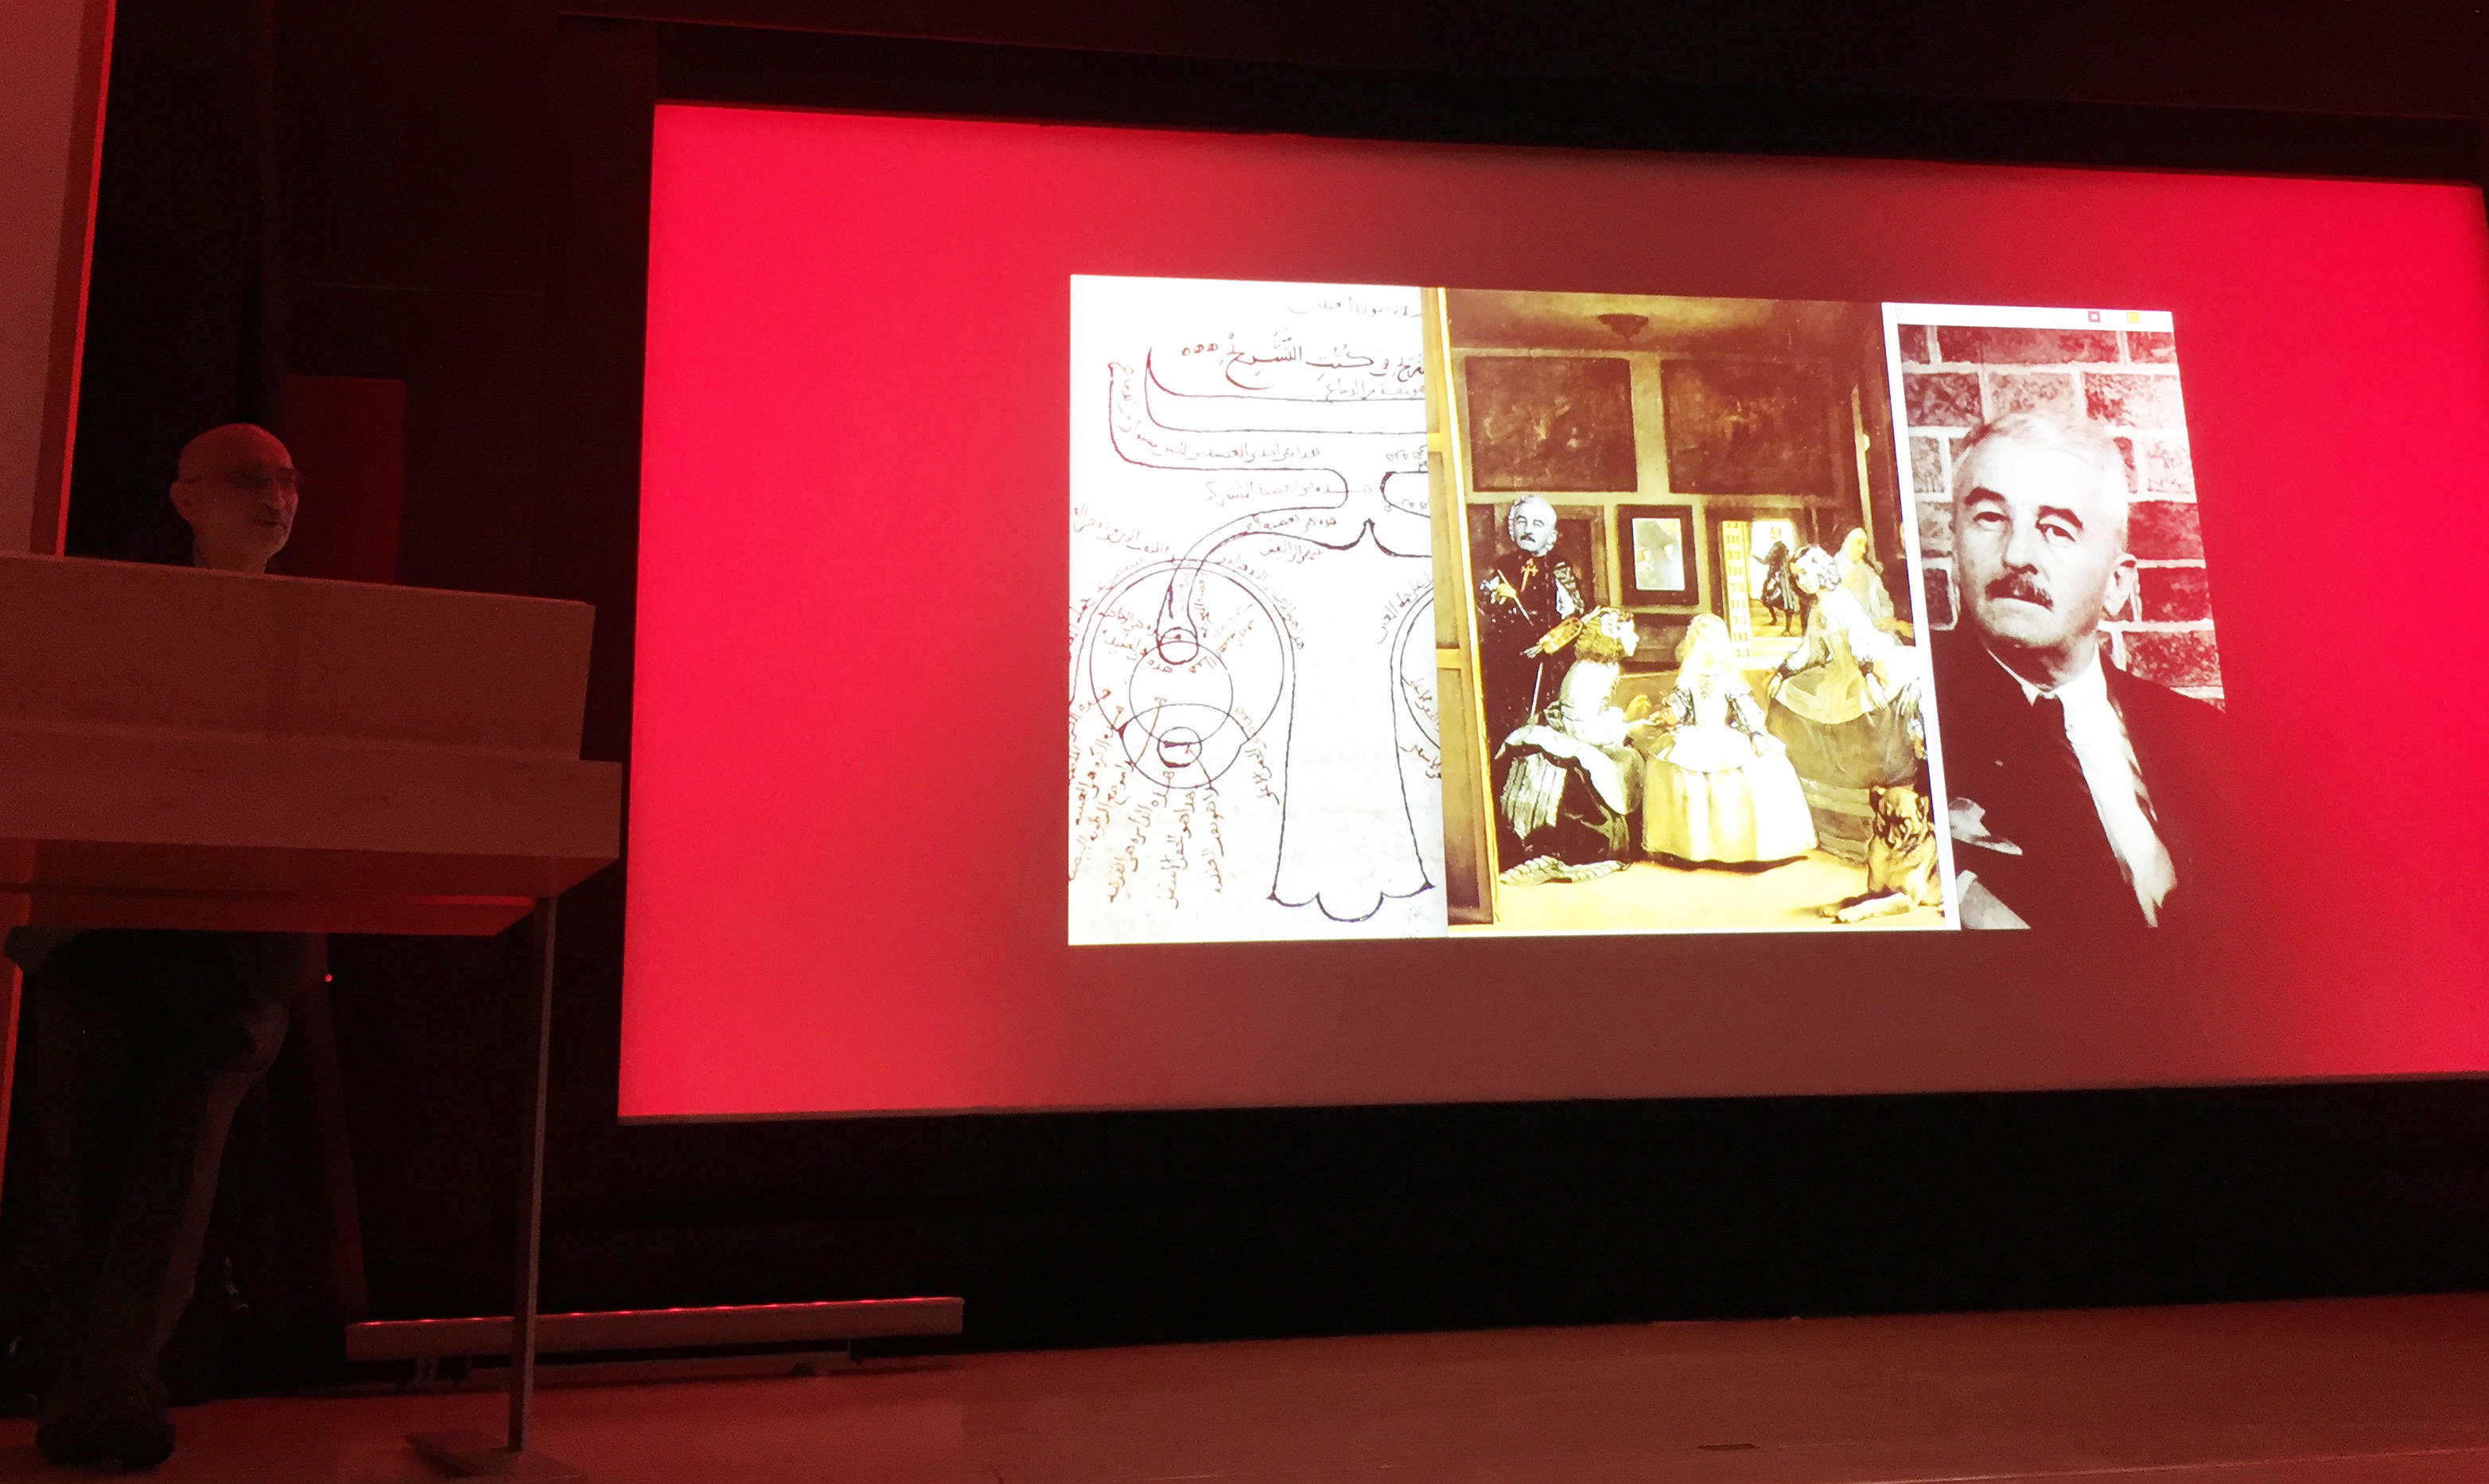 Last screen of the Lecture Ibn al-Haytham, Las Meninas and William Faulkner